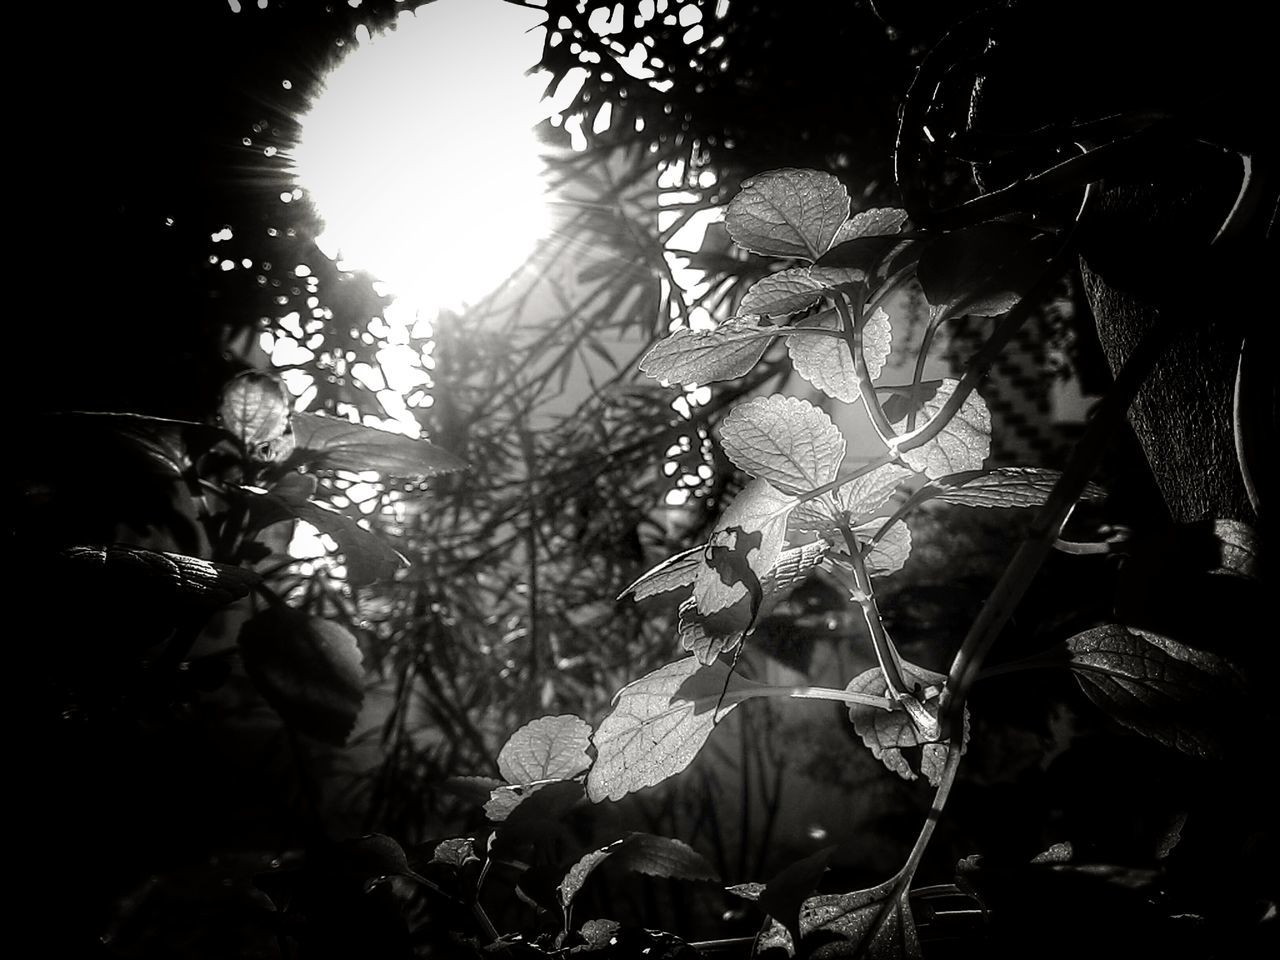 Monochrome Photography Nature Close-up Plant Life Outdoors Leaves Blackandwhite Sunrise Lenkacam GoodMorningWorld